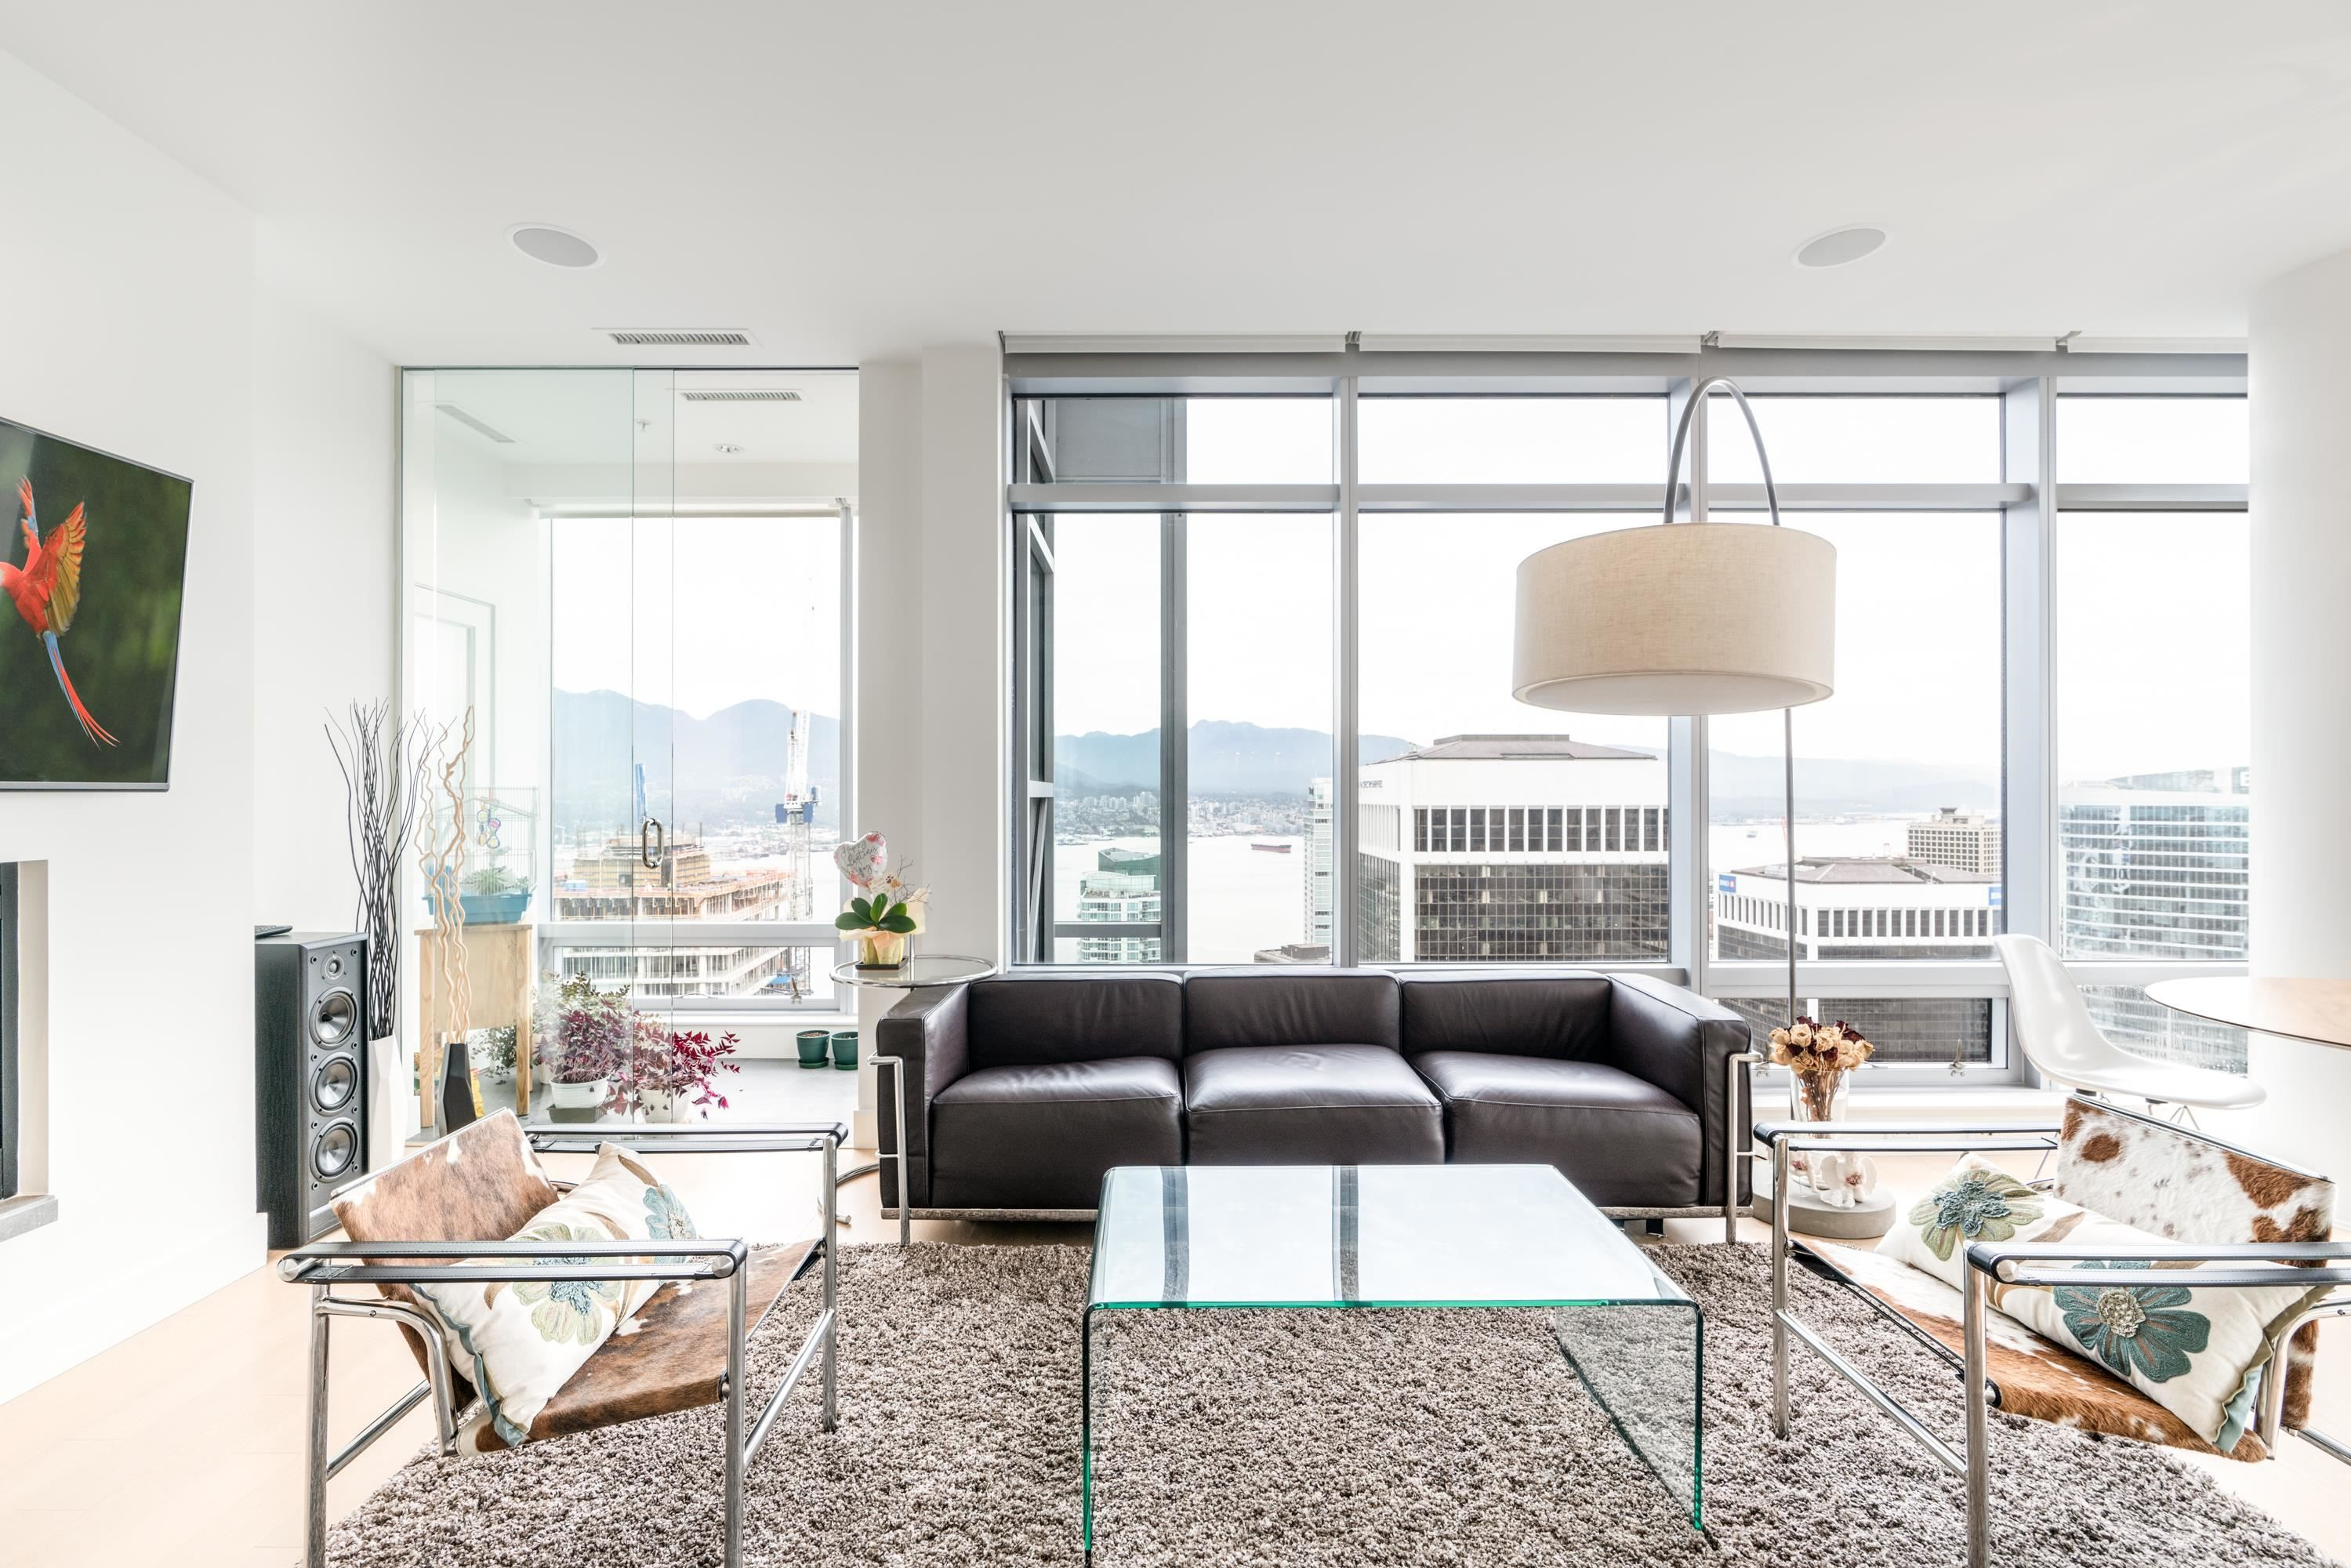 Main Photo: 4304 1111 ALBERNI STREET in Vancouver: West End VW Condo for sale (Vancouver West)  : MLS®# R2617226